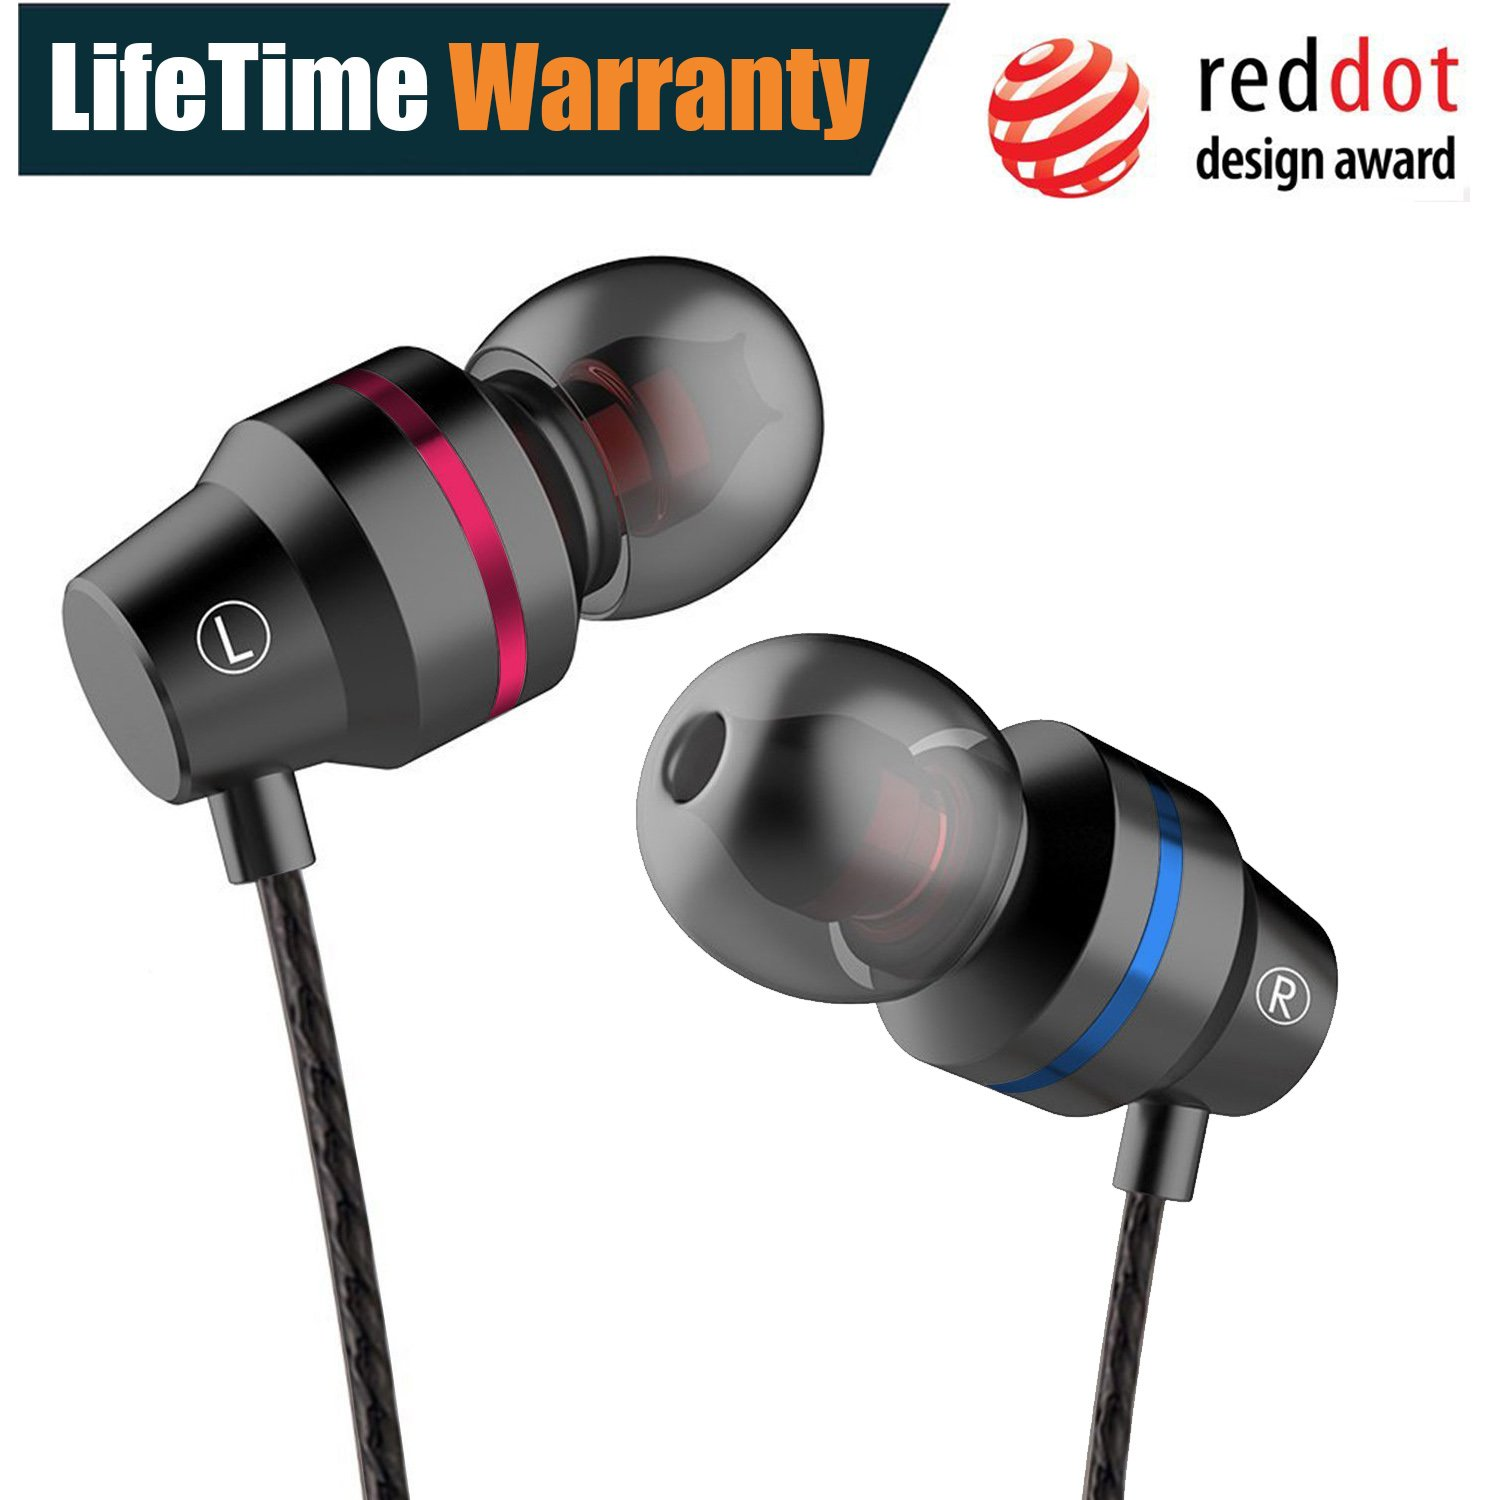 Earphones In Ear Headphones Earbuds with Microphone Mic Stereo and Volume Control Waterproof Wired Earphone For iPhone Samsung Android Mp3 Players Tablet Laptop 3.5mm Audio Black by KURSO